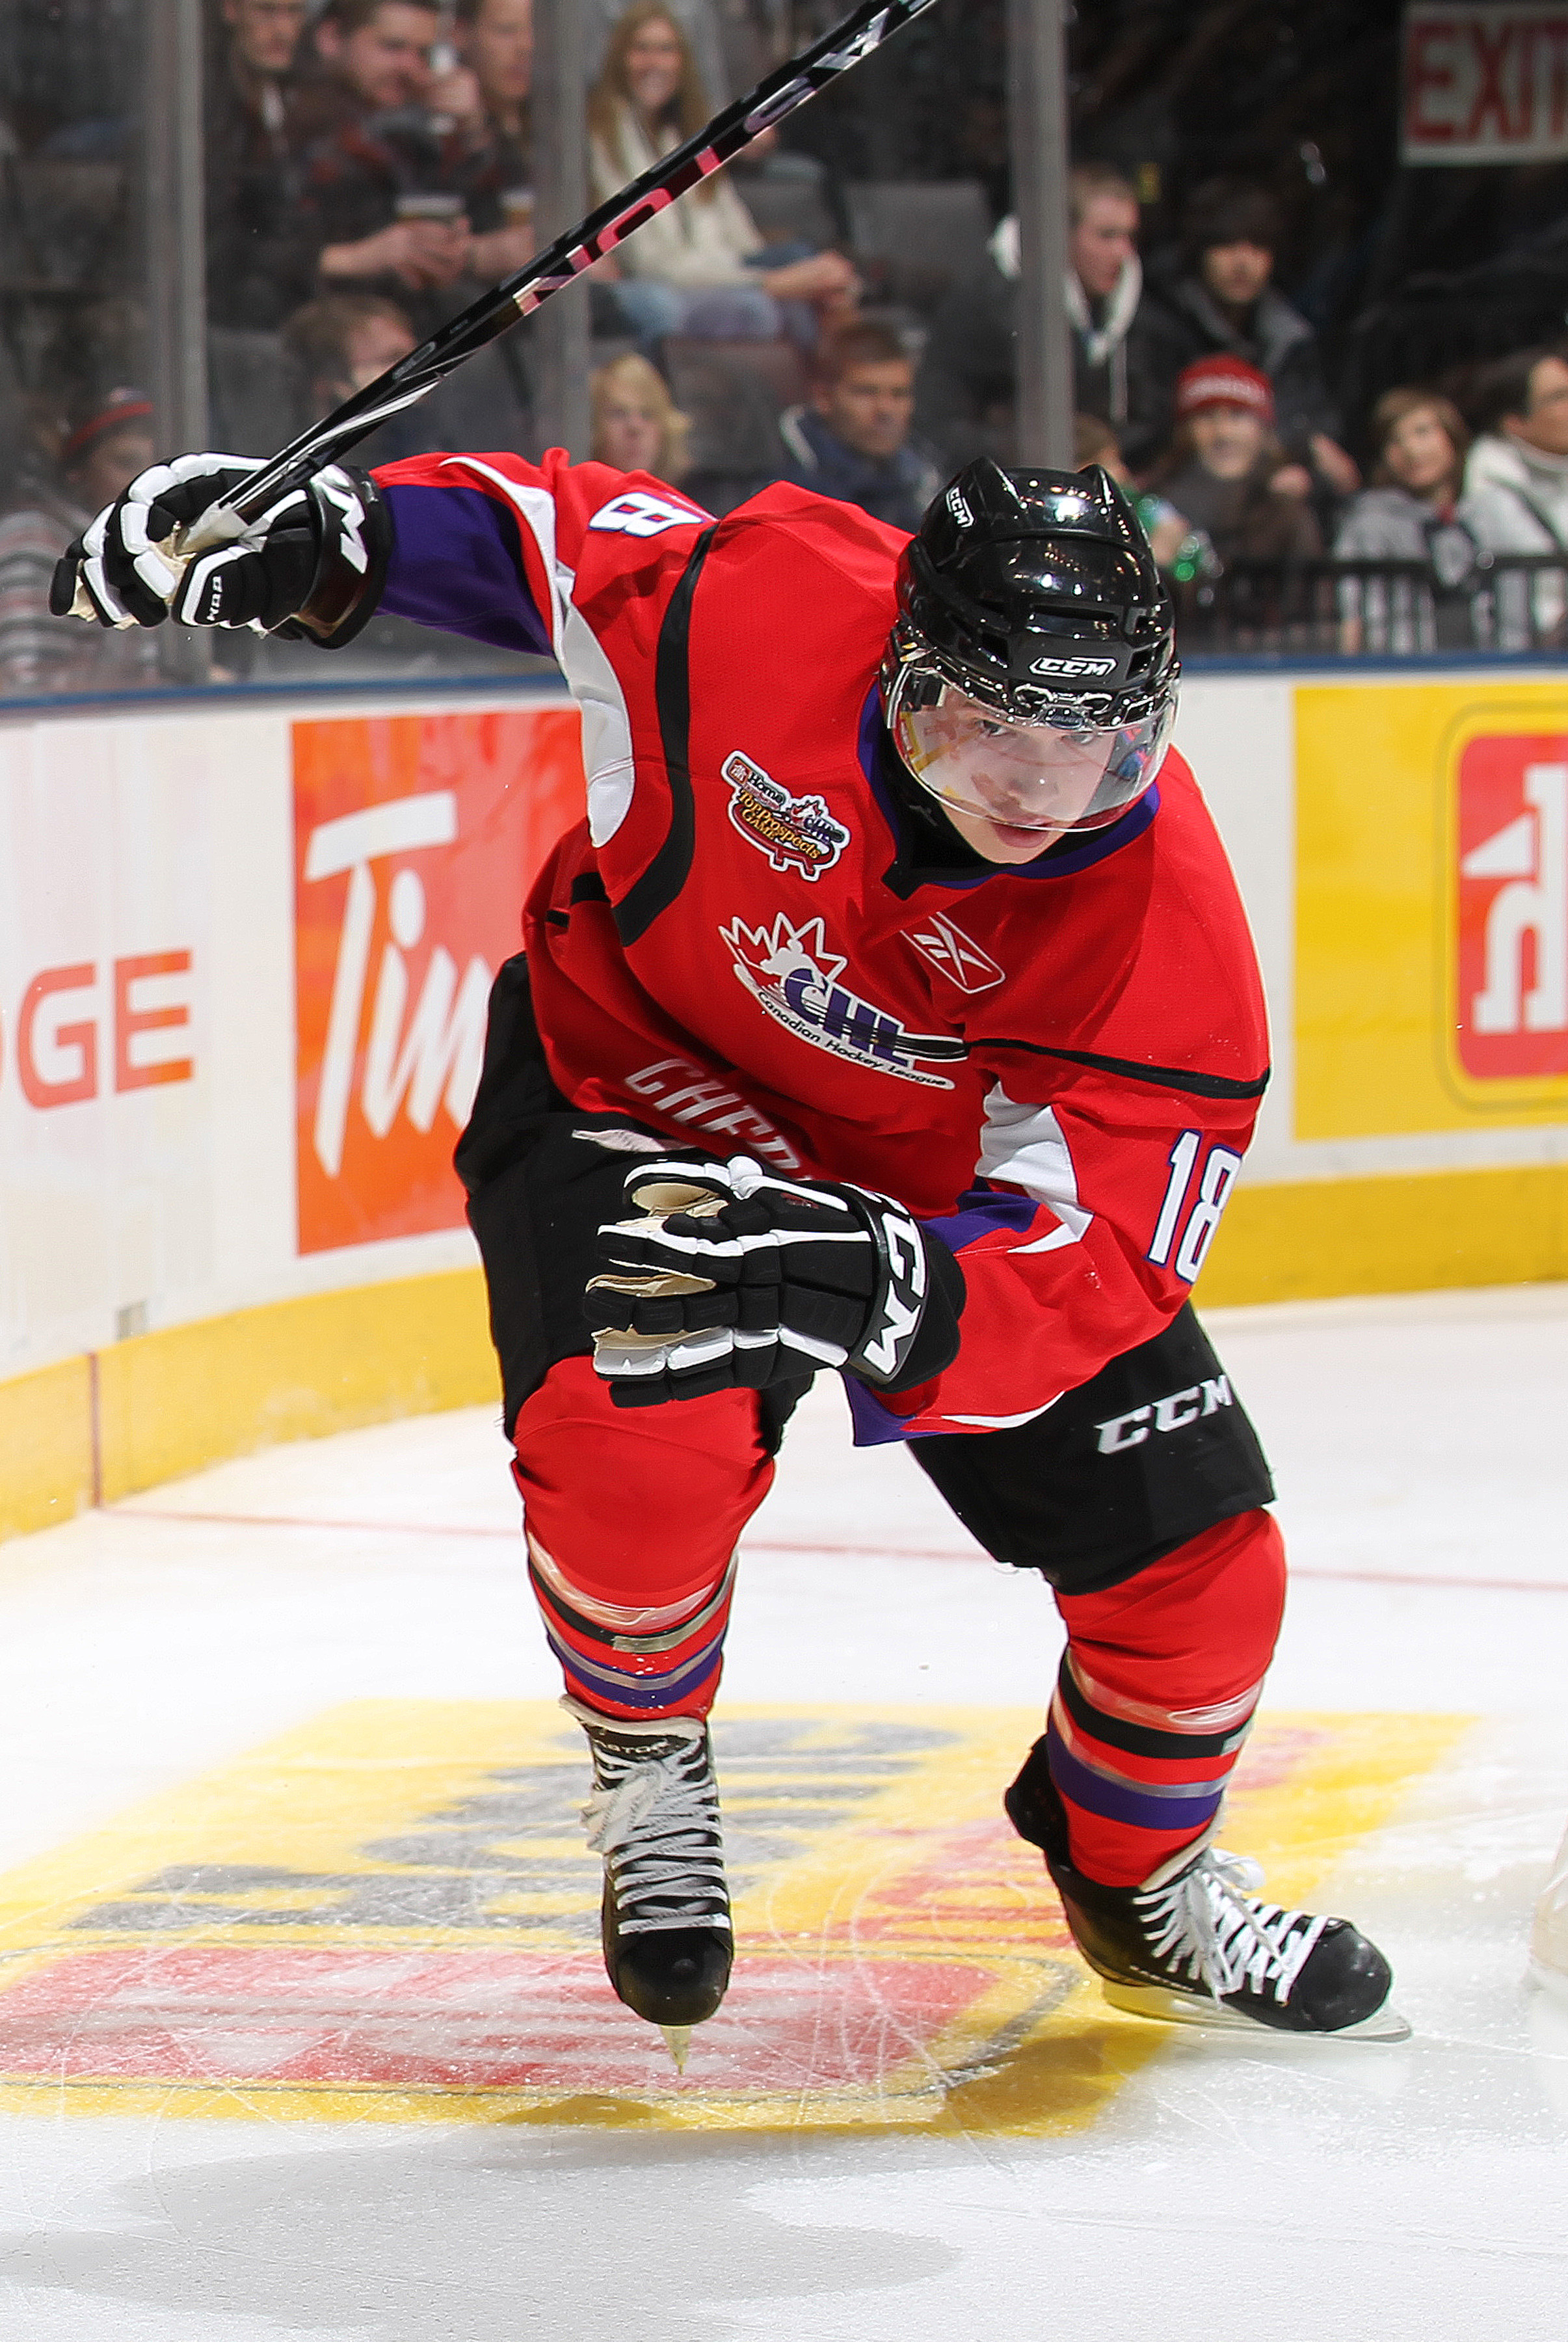 TORONTO, CAN - JANUARY 19:  Matt Puempel #18 of Team Cherry skates after a puck against Team Orr in the 2011 Home Hardware Top Prospects game on January 19, 2011 at the Air Canada Centre in Toronto, Canada. Team Orr defeated Team Cherry 7-1. (Photo by Cla